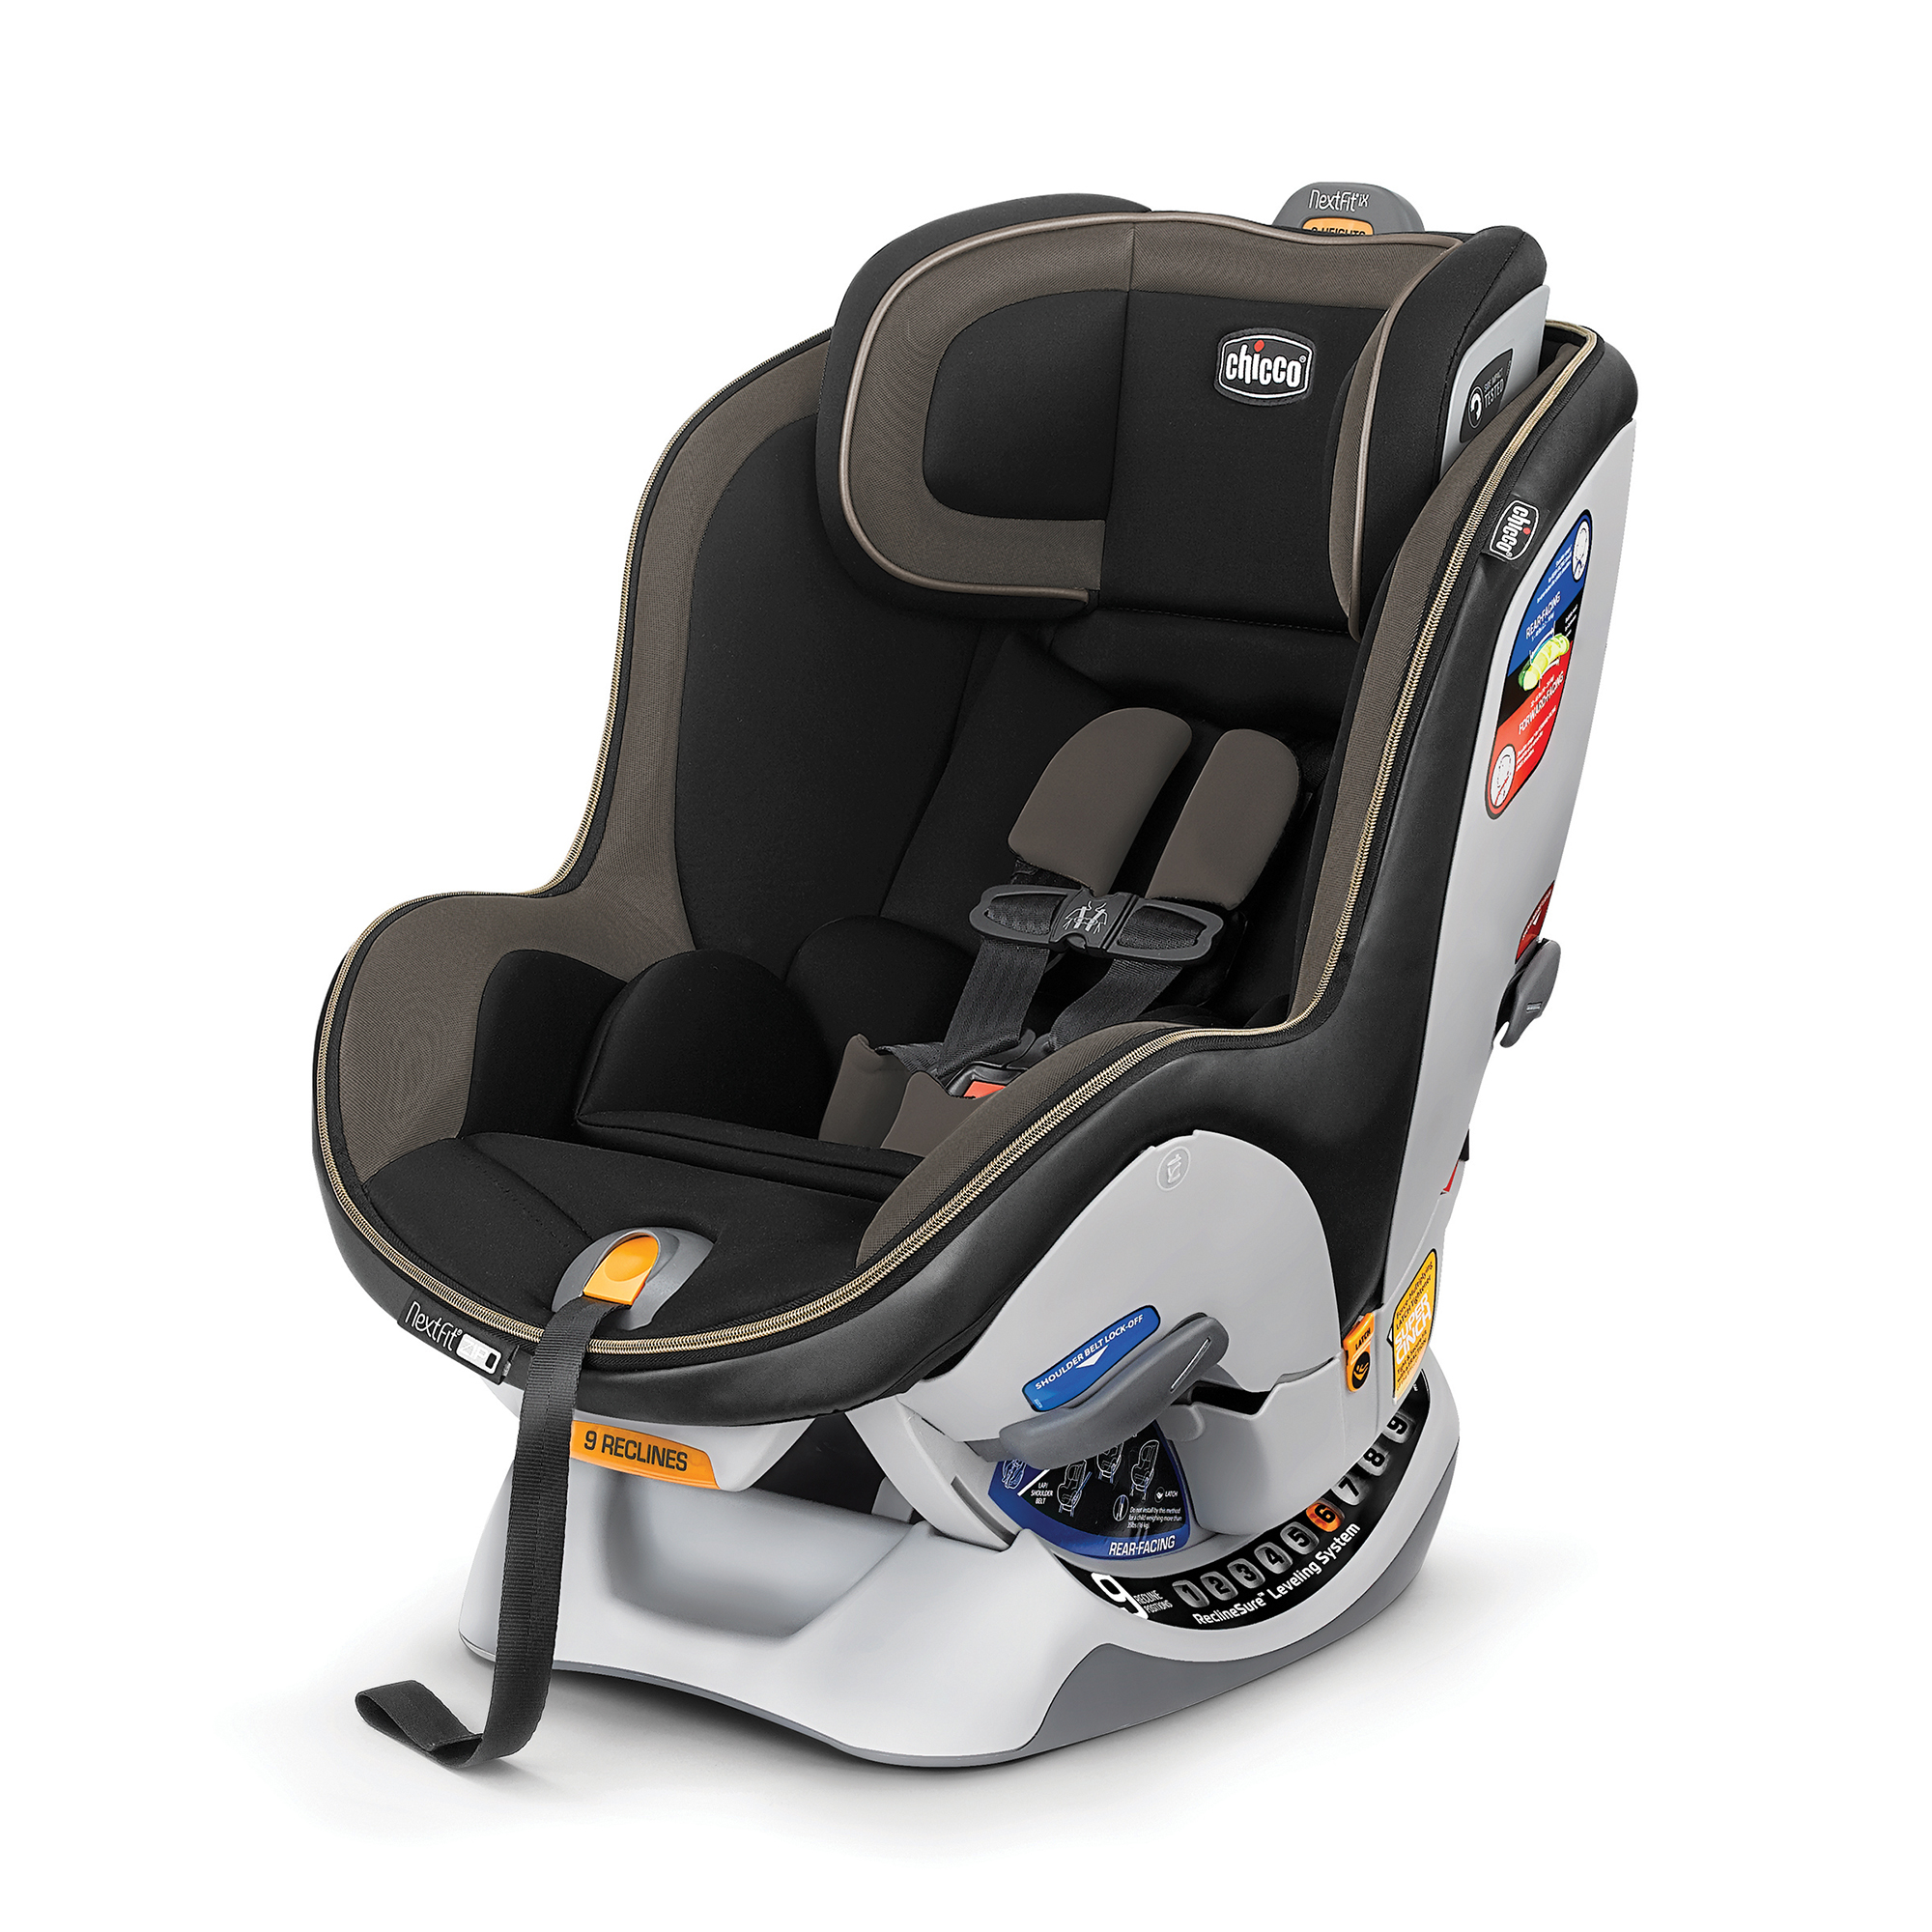 Chicco NextFit iX Zip Convertible Car Seat, Assorted Colors by Chicco